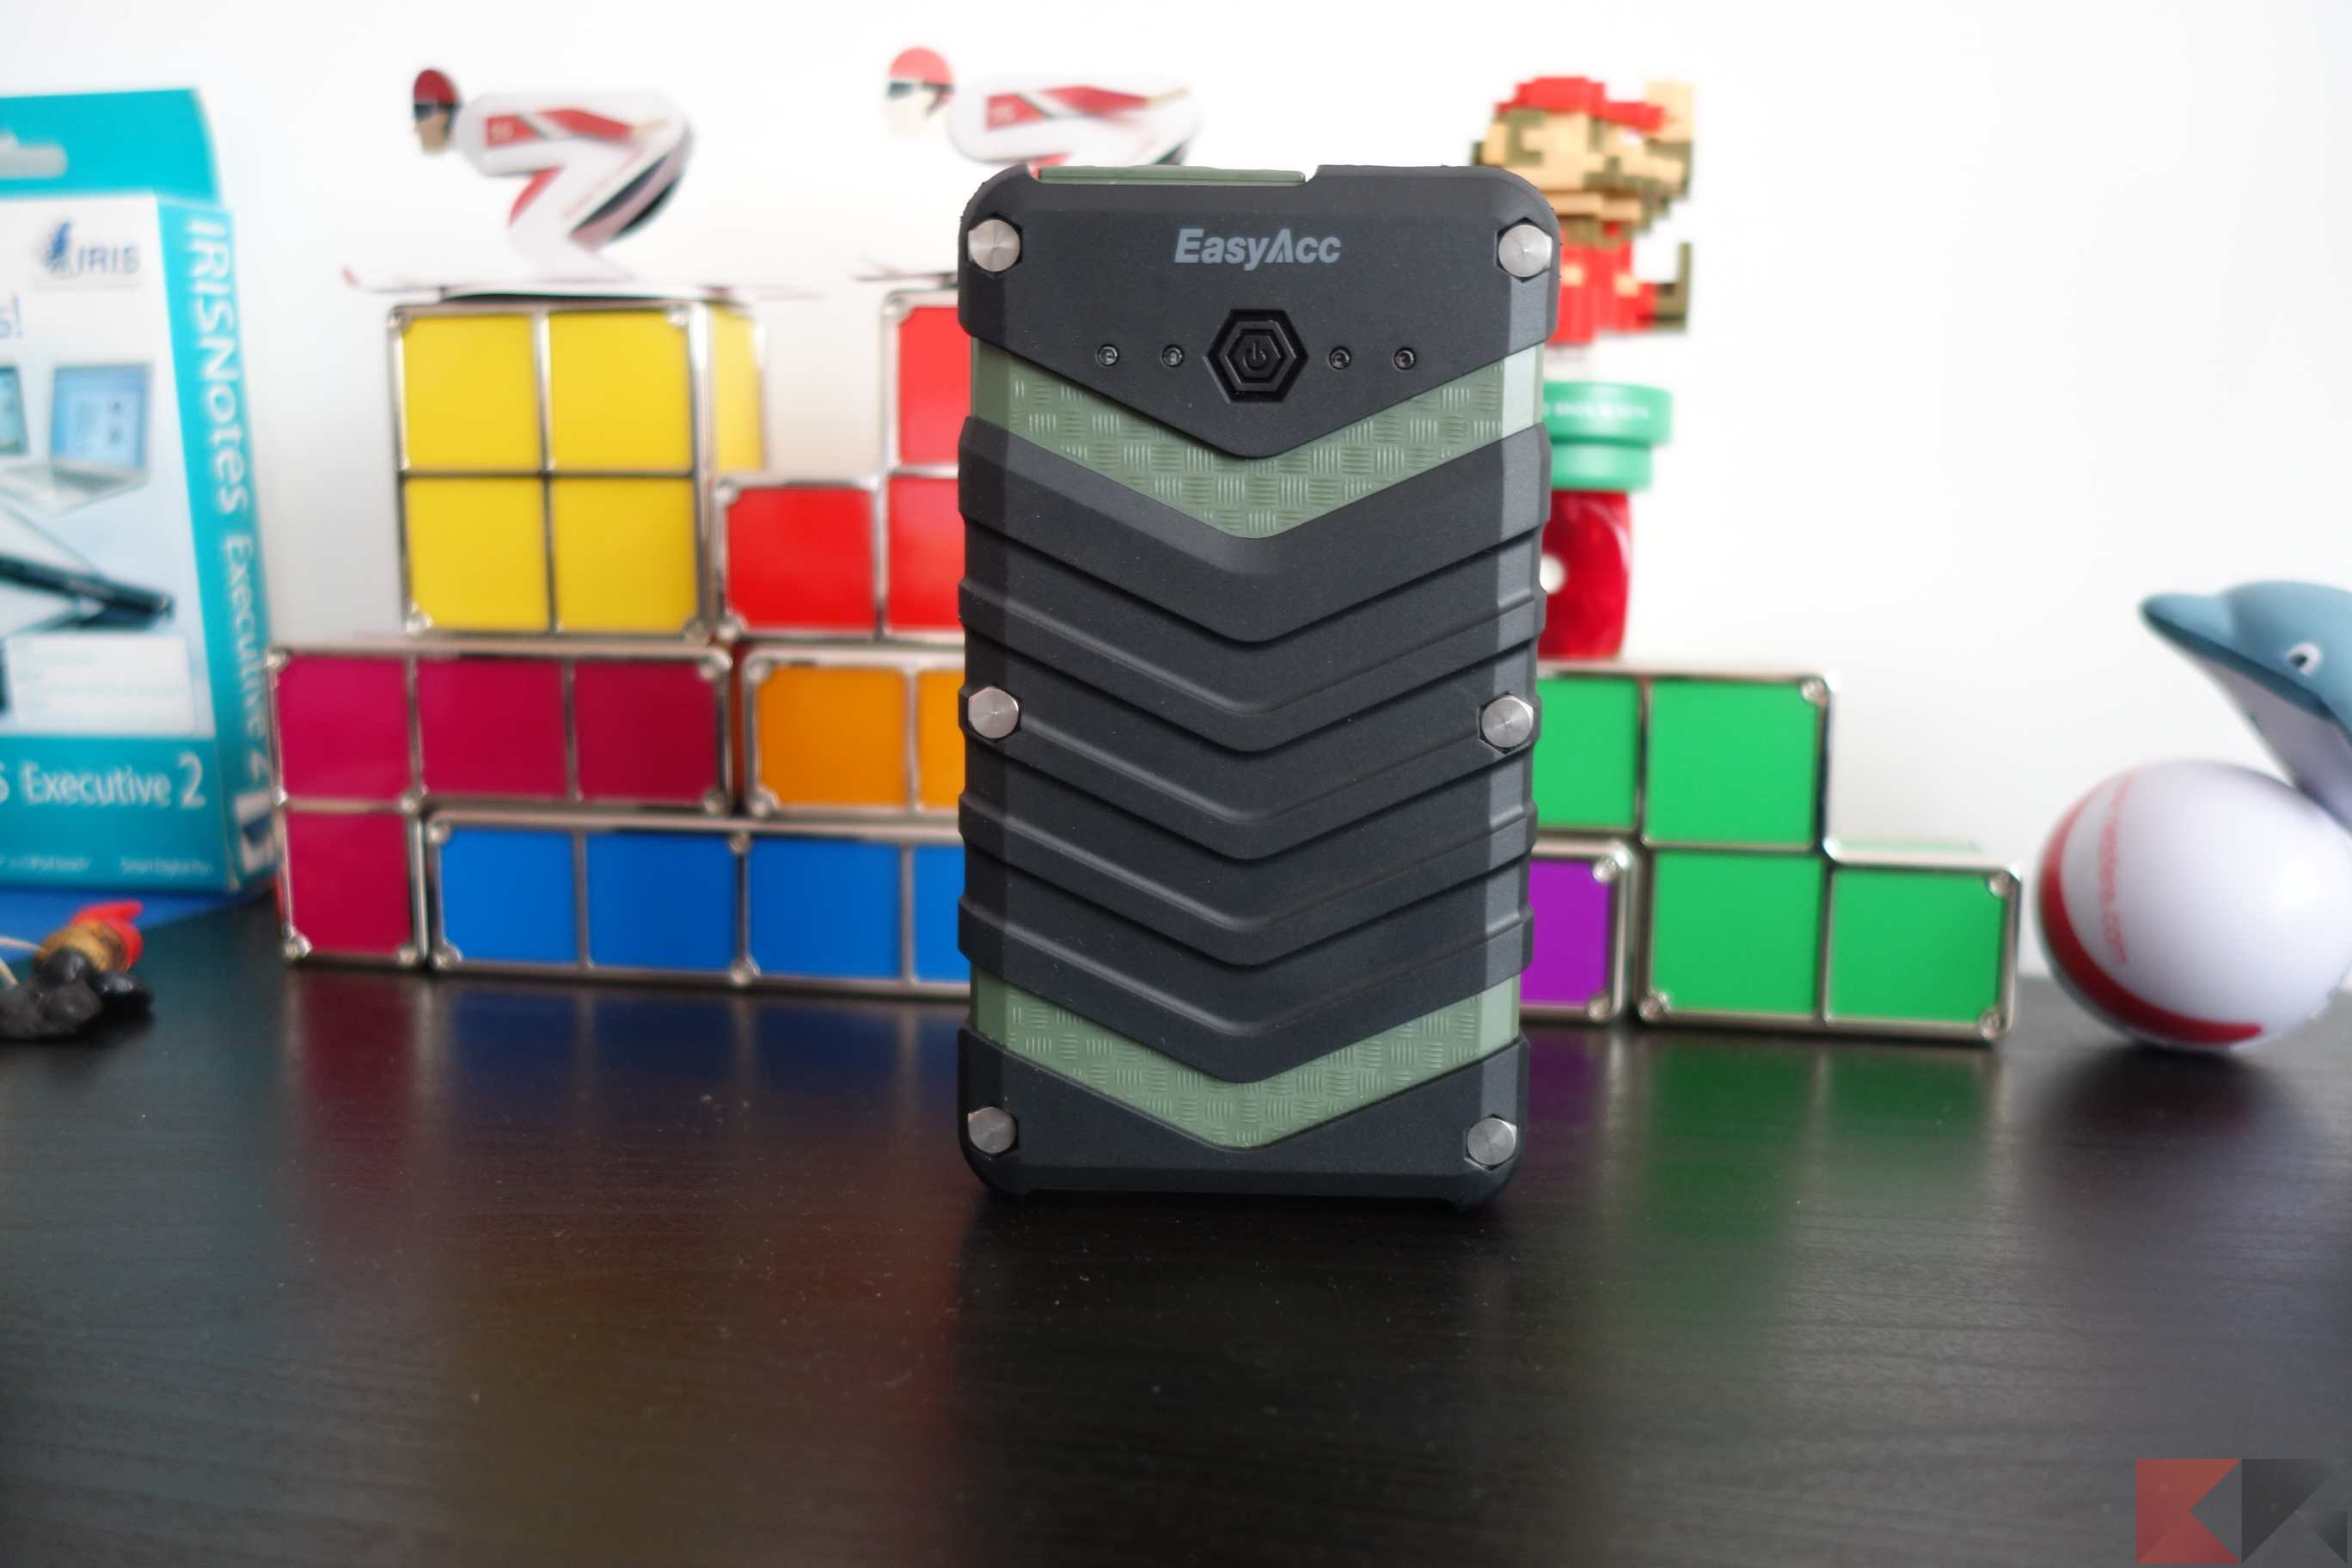 EasyAcc 20000 mAh rugged 8